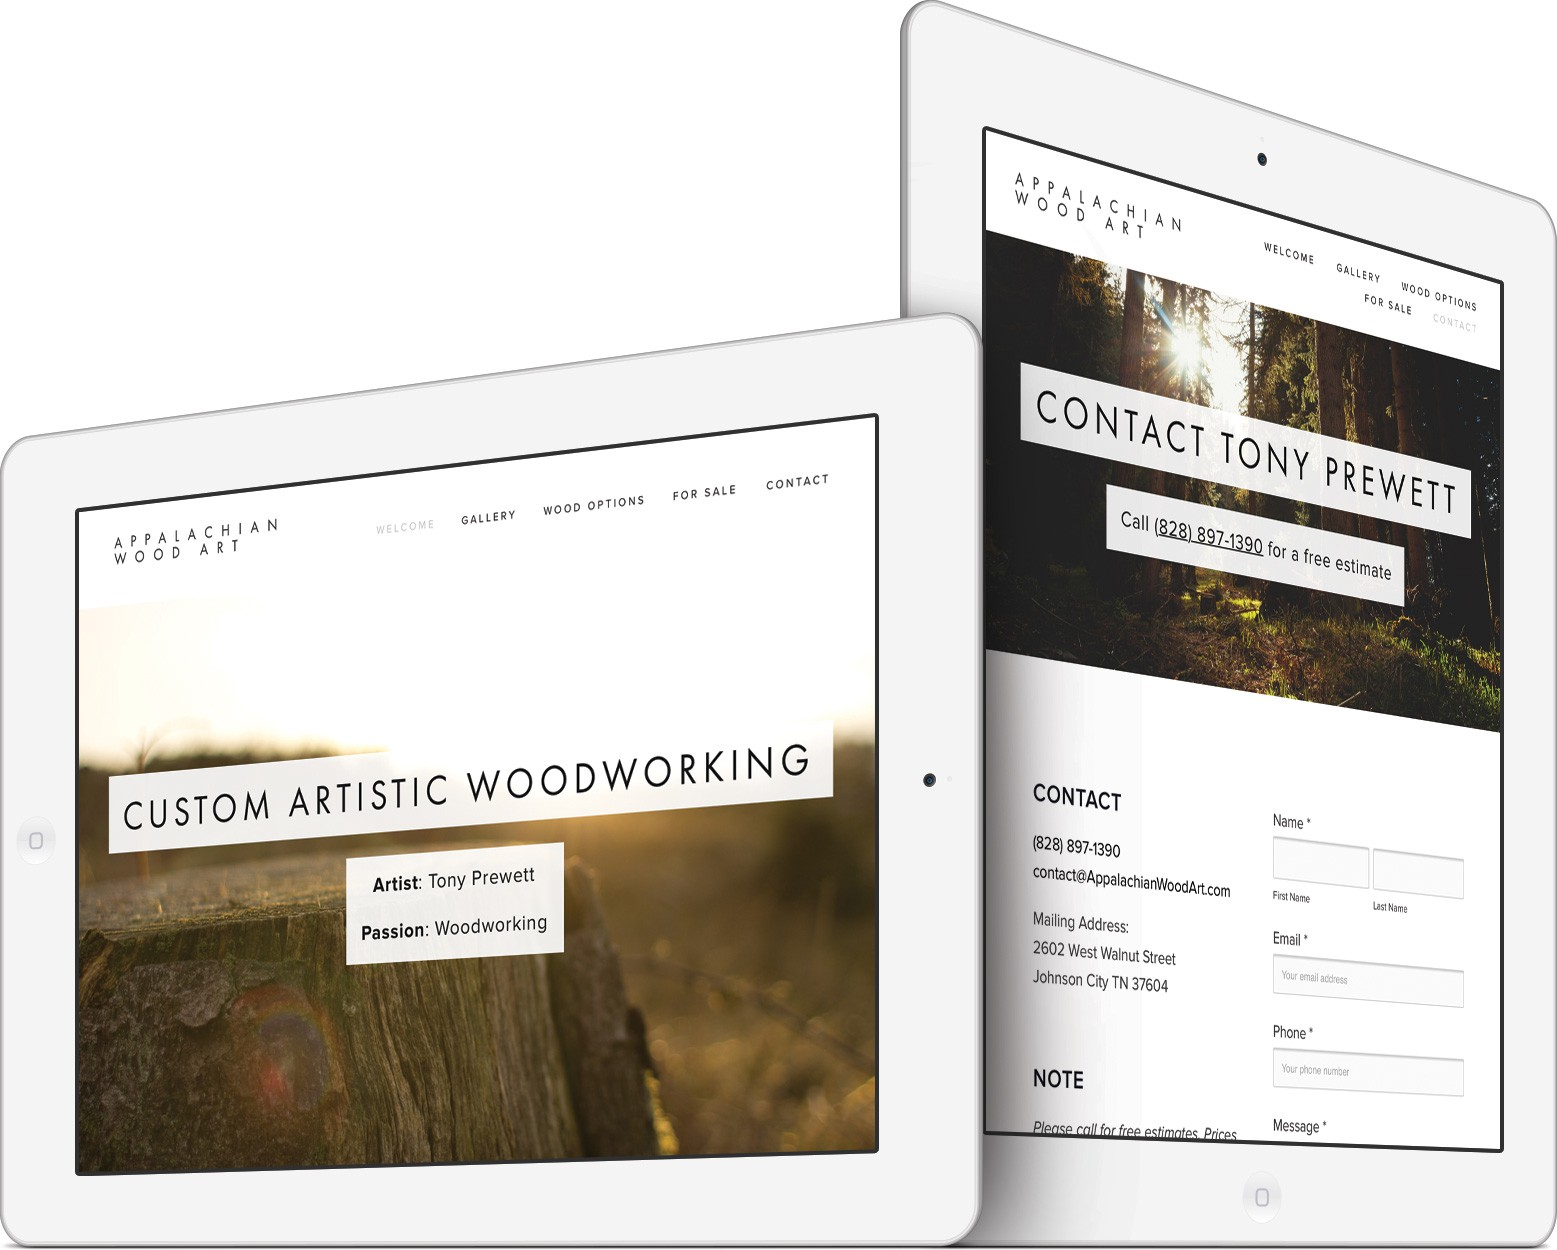 Appalachian Wood Art Web Design on an iPad